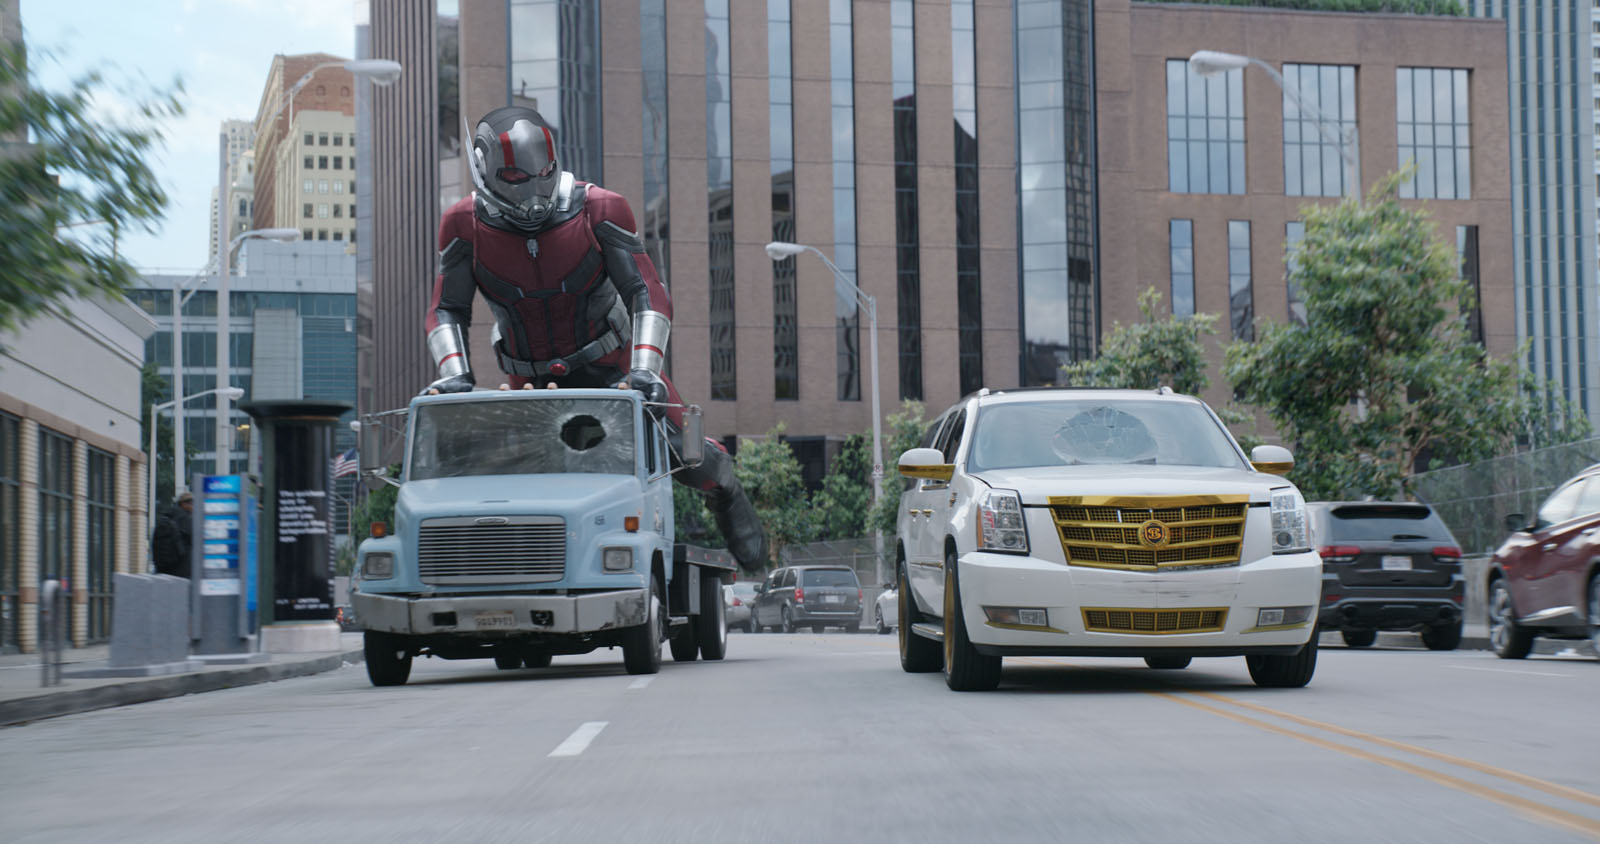 Big and small chases through the streets in Ant-Man and the Wasp (2018)